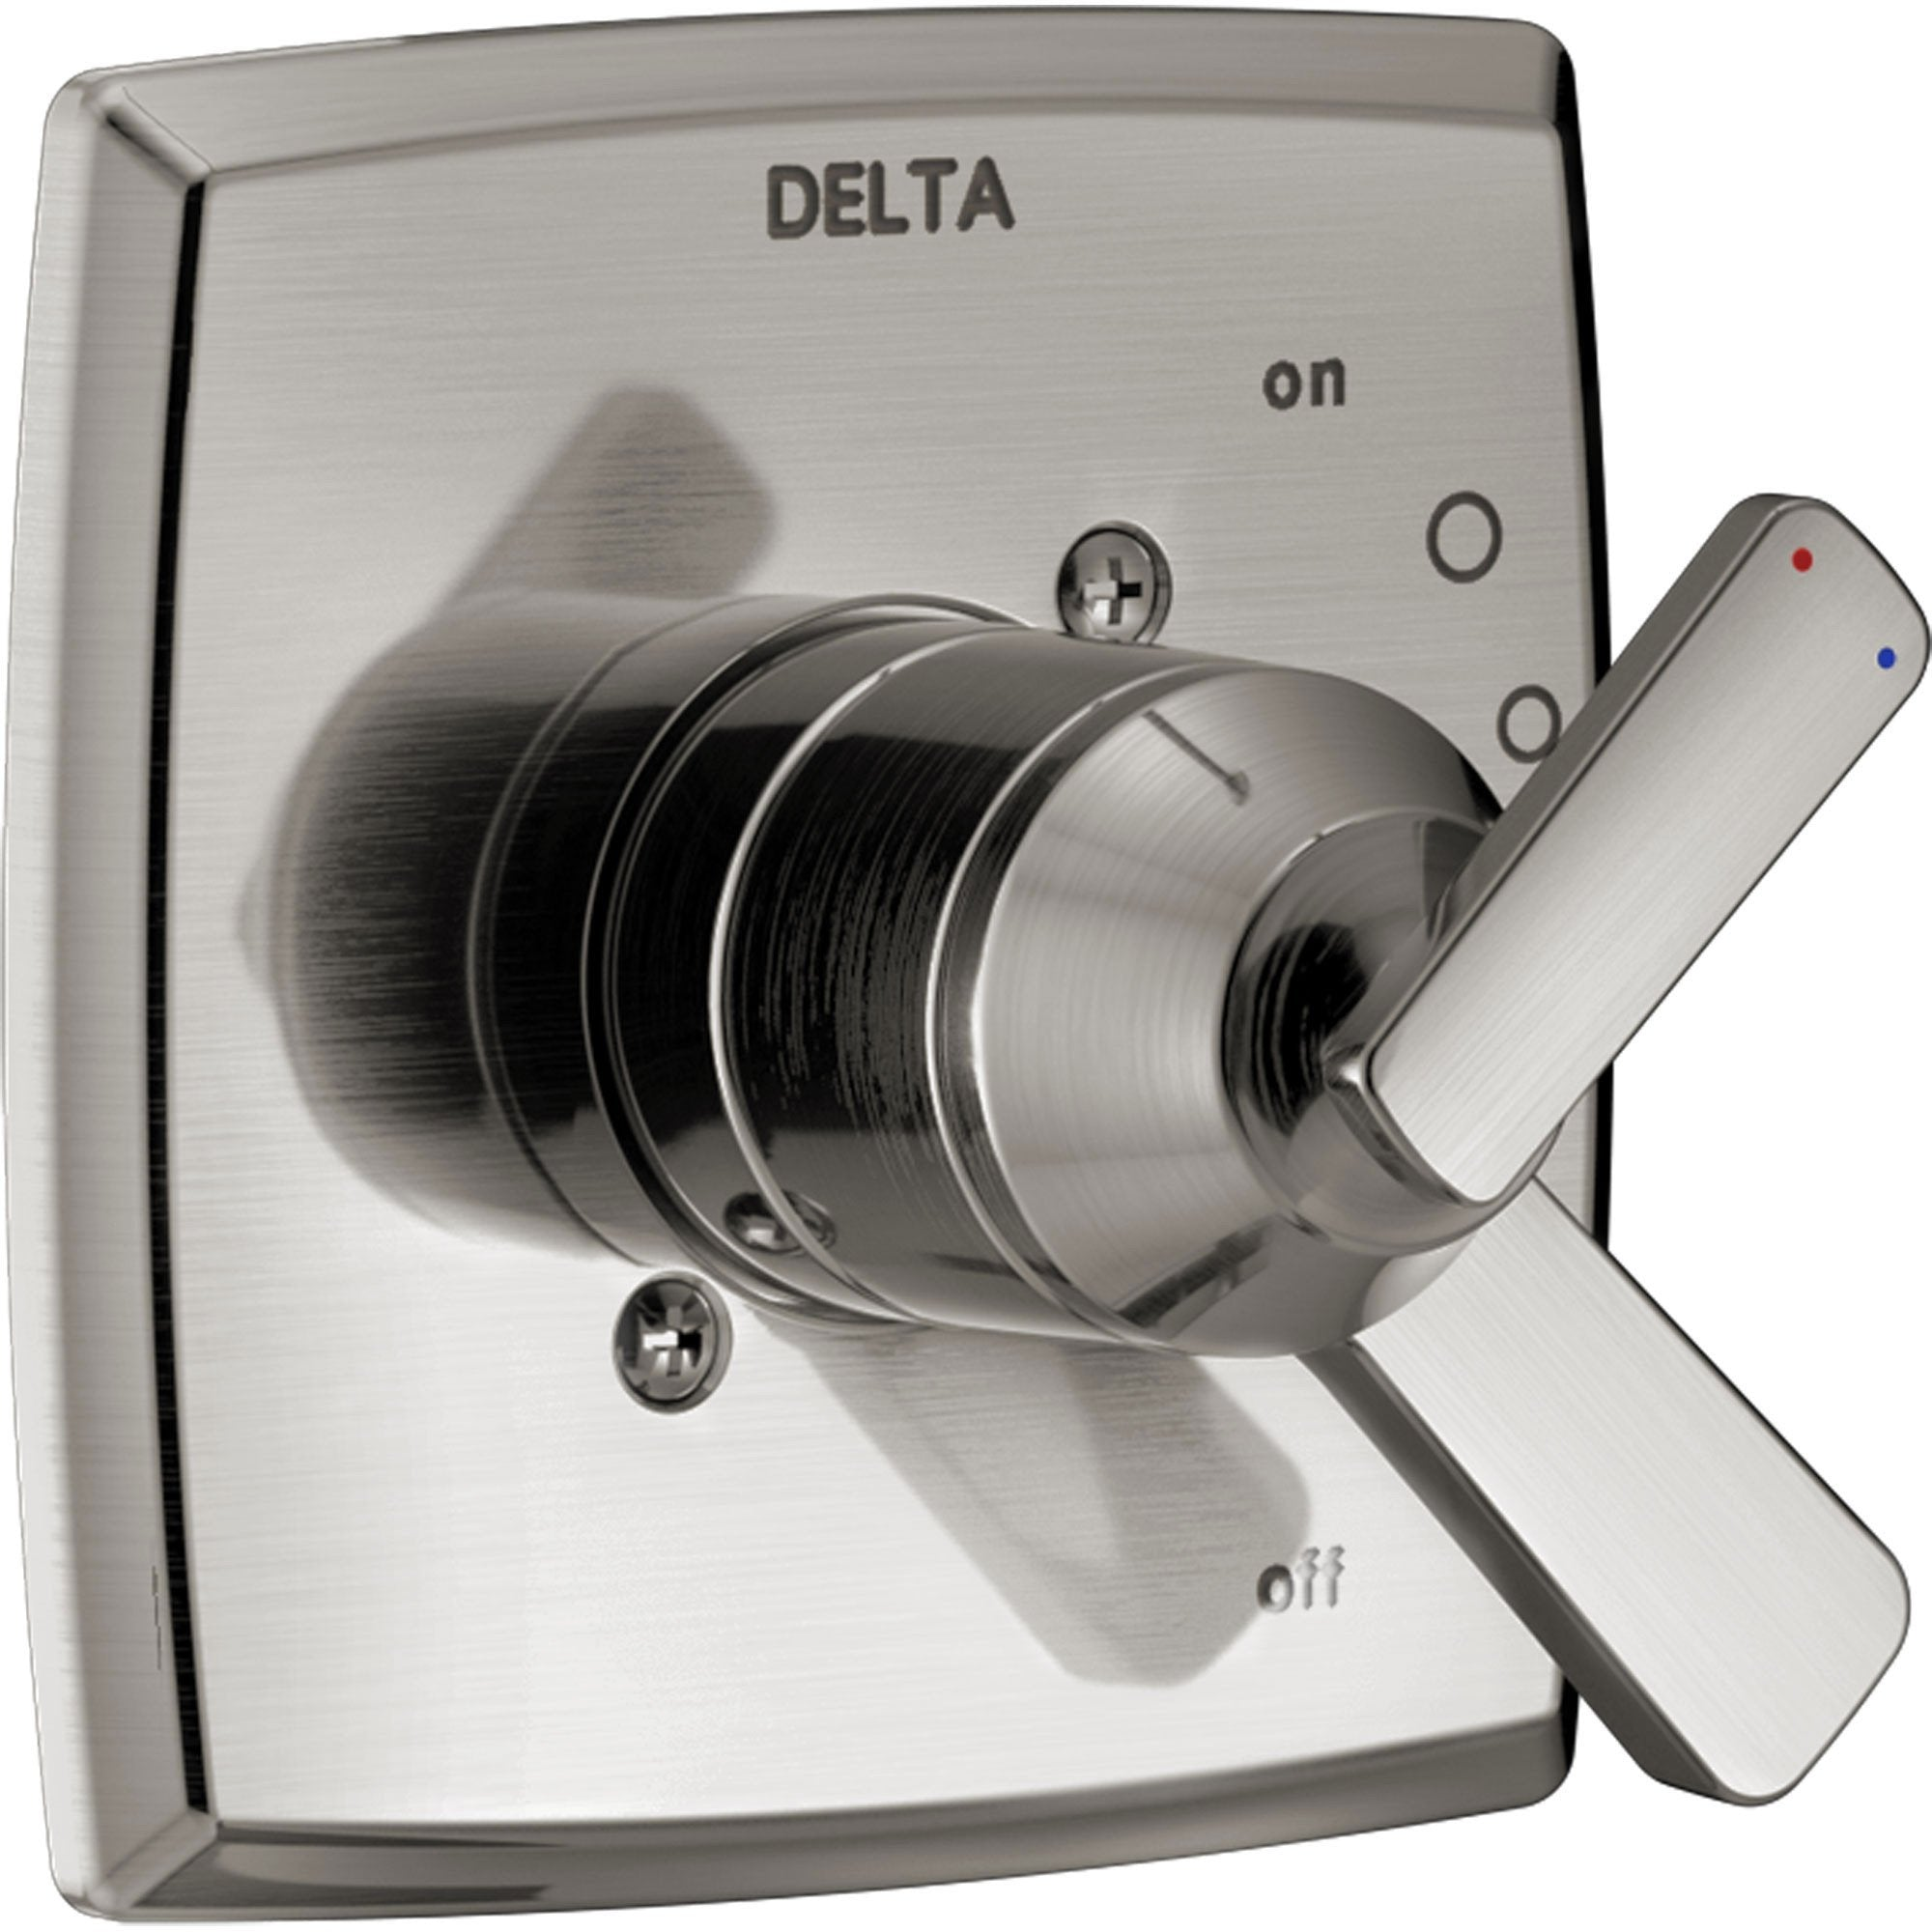 Delta Ashlyn Modern Stainless Steel Finish 17 Series Dual Temperature and Pressure Shower Faucet Control INCLUDES Rough-in Valve D1152V